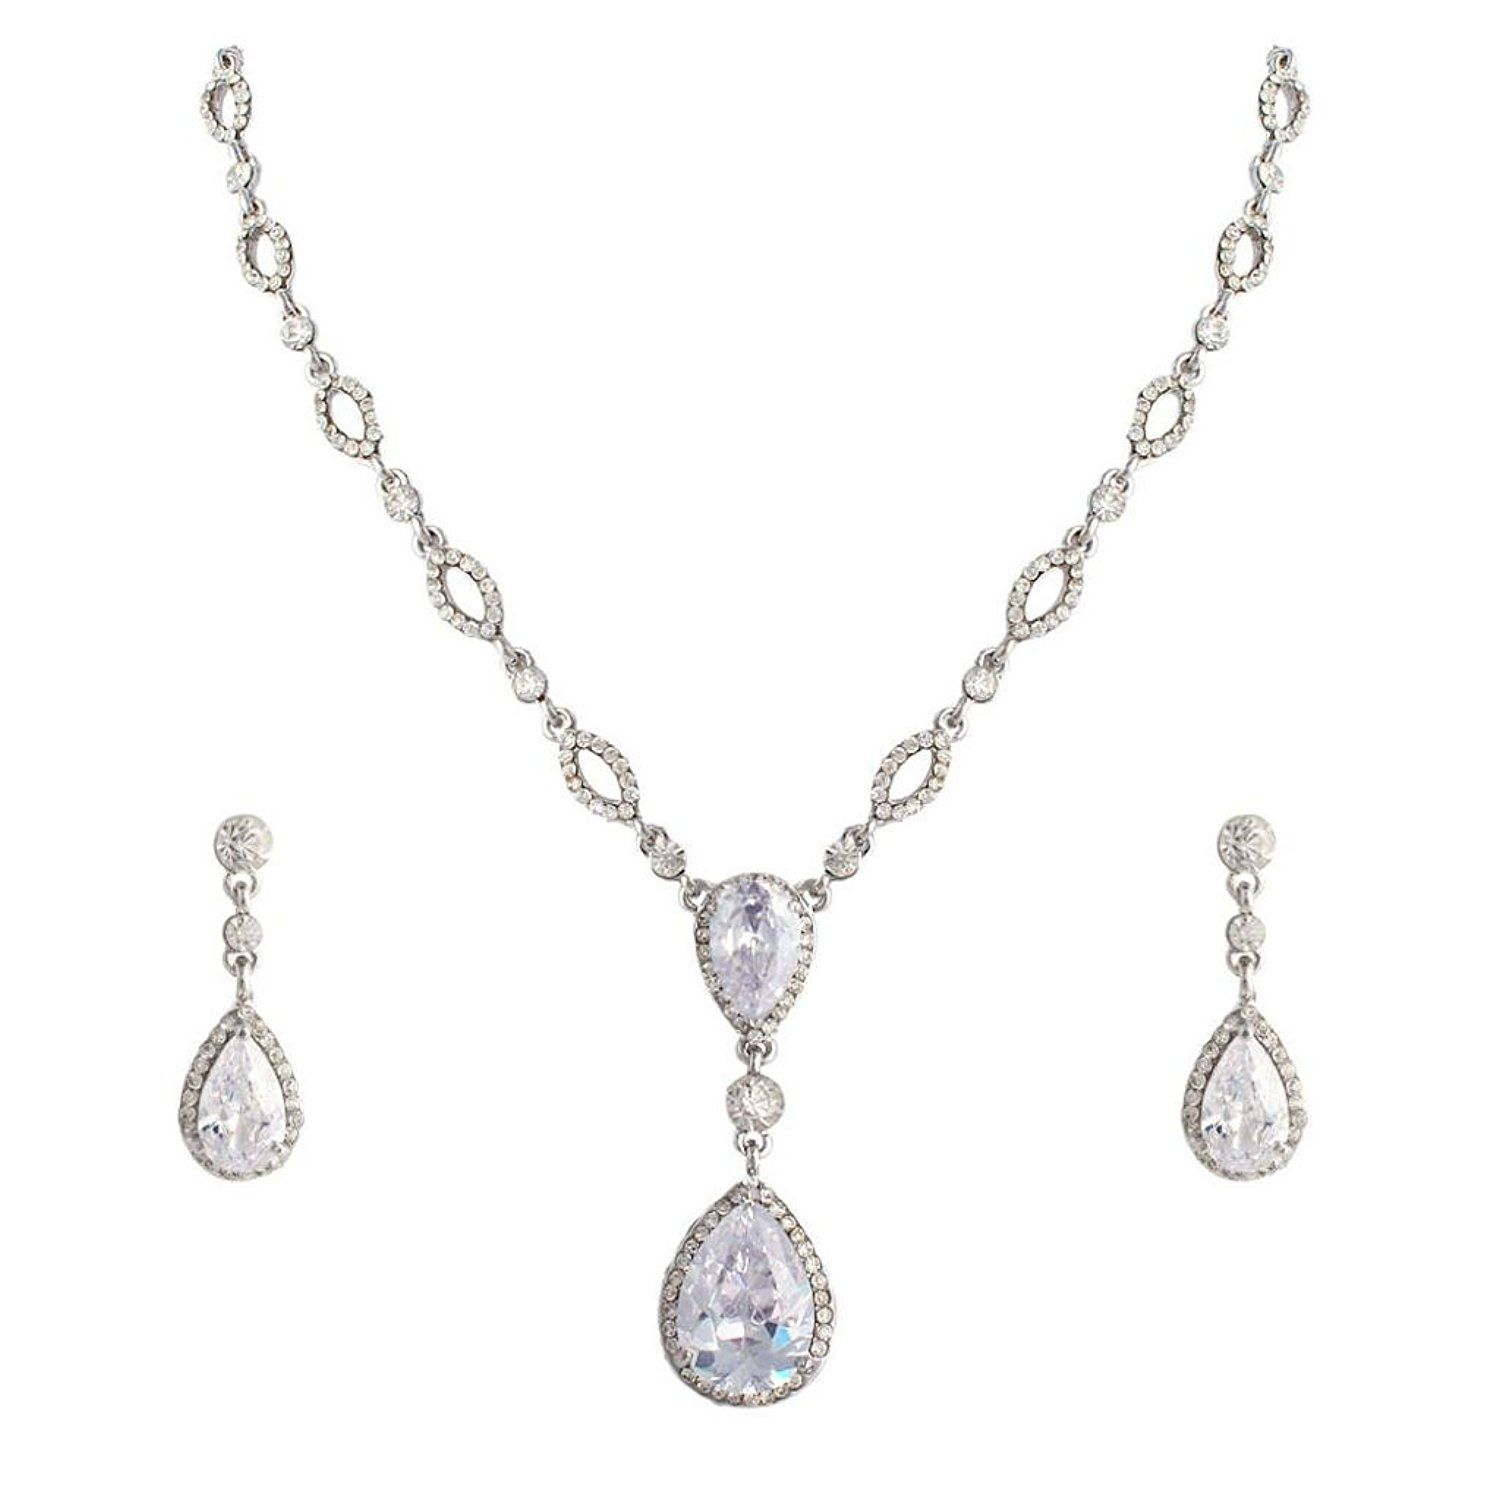 Ever faith bridal clear zircon crystal teardrop necklace earrings